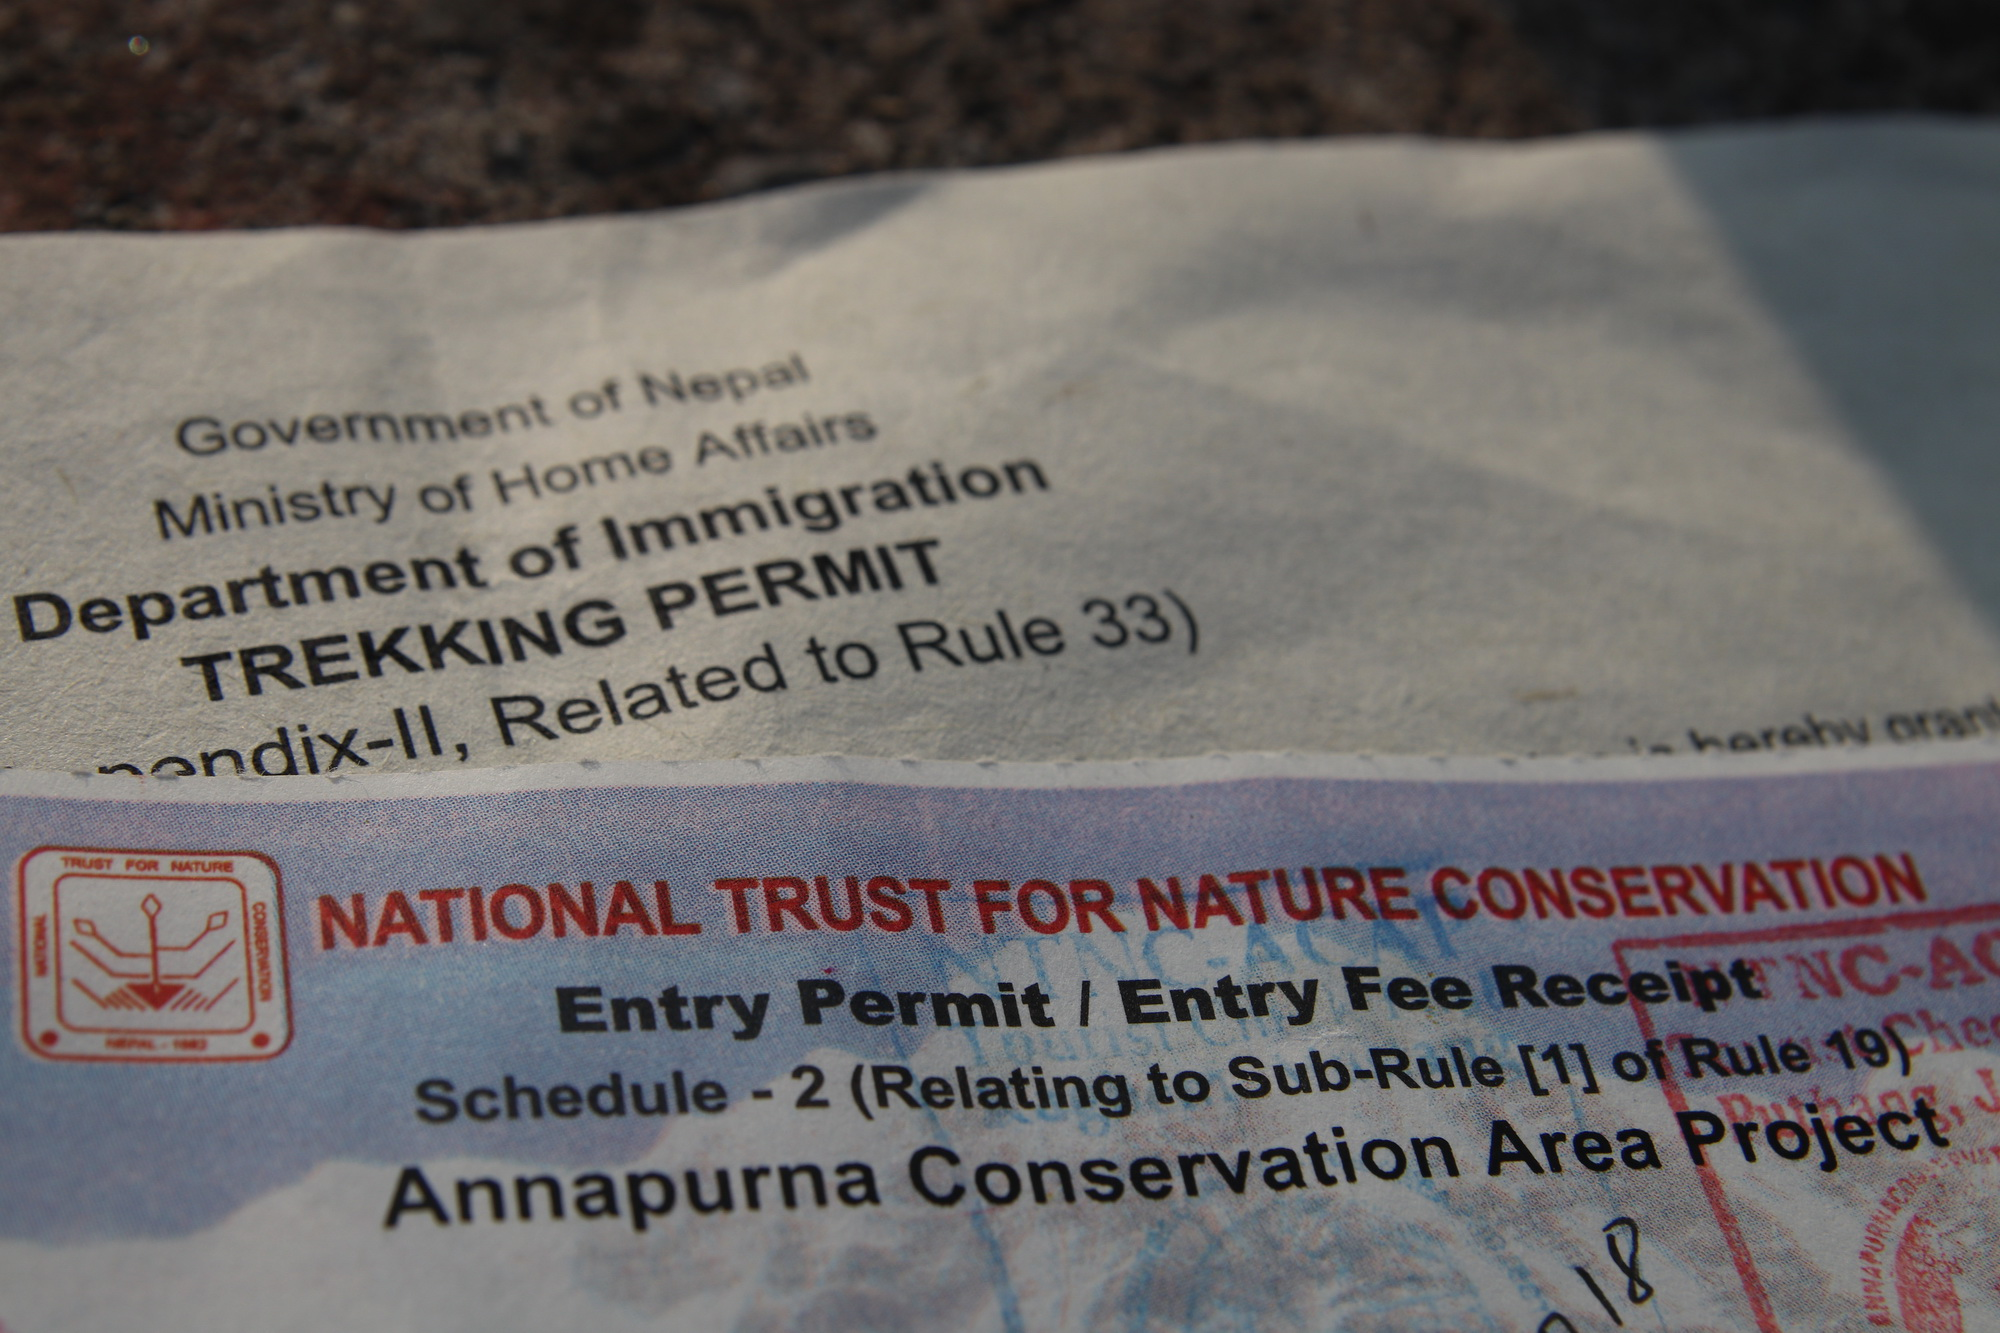 Upper Mustang and Annapurna Conservation Area Project Permit (ACAP)